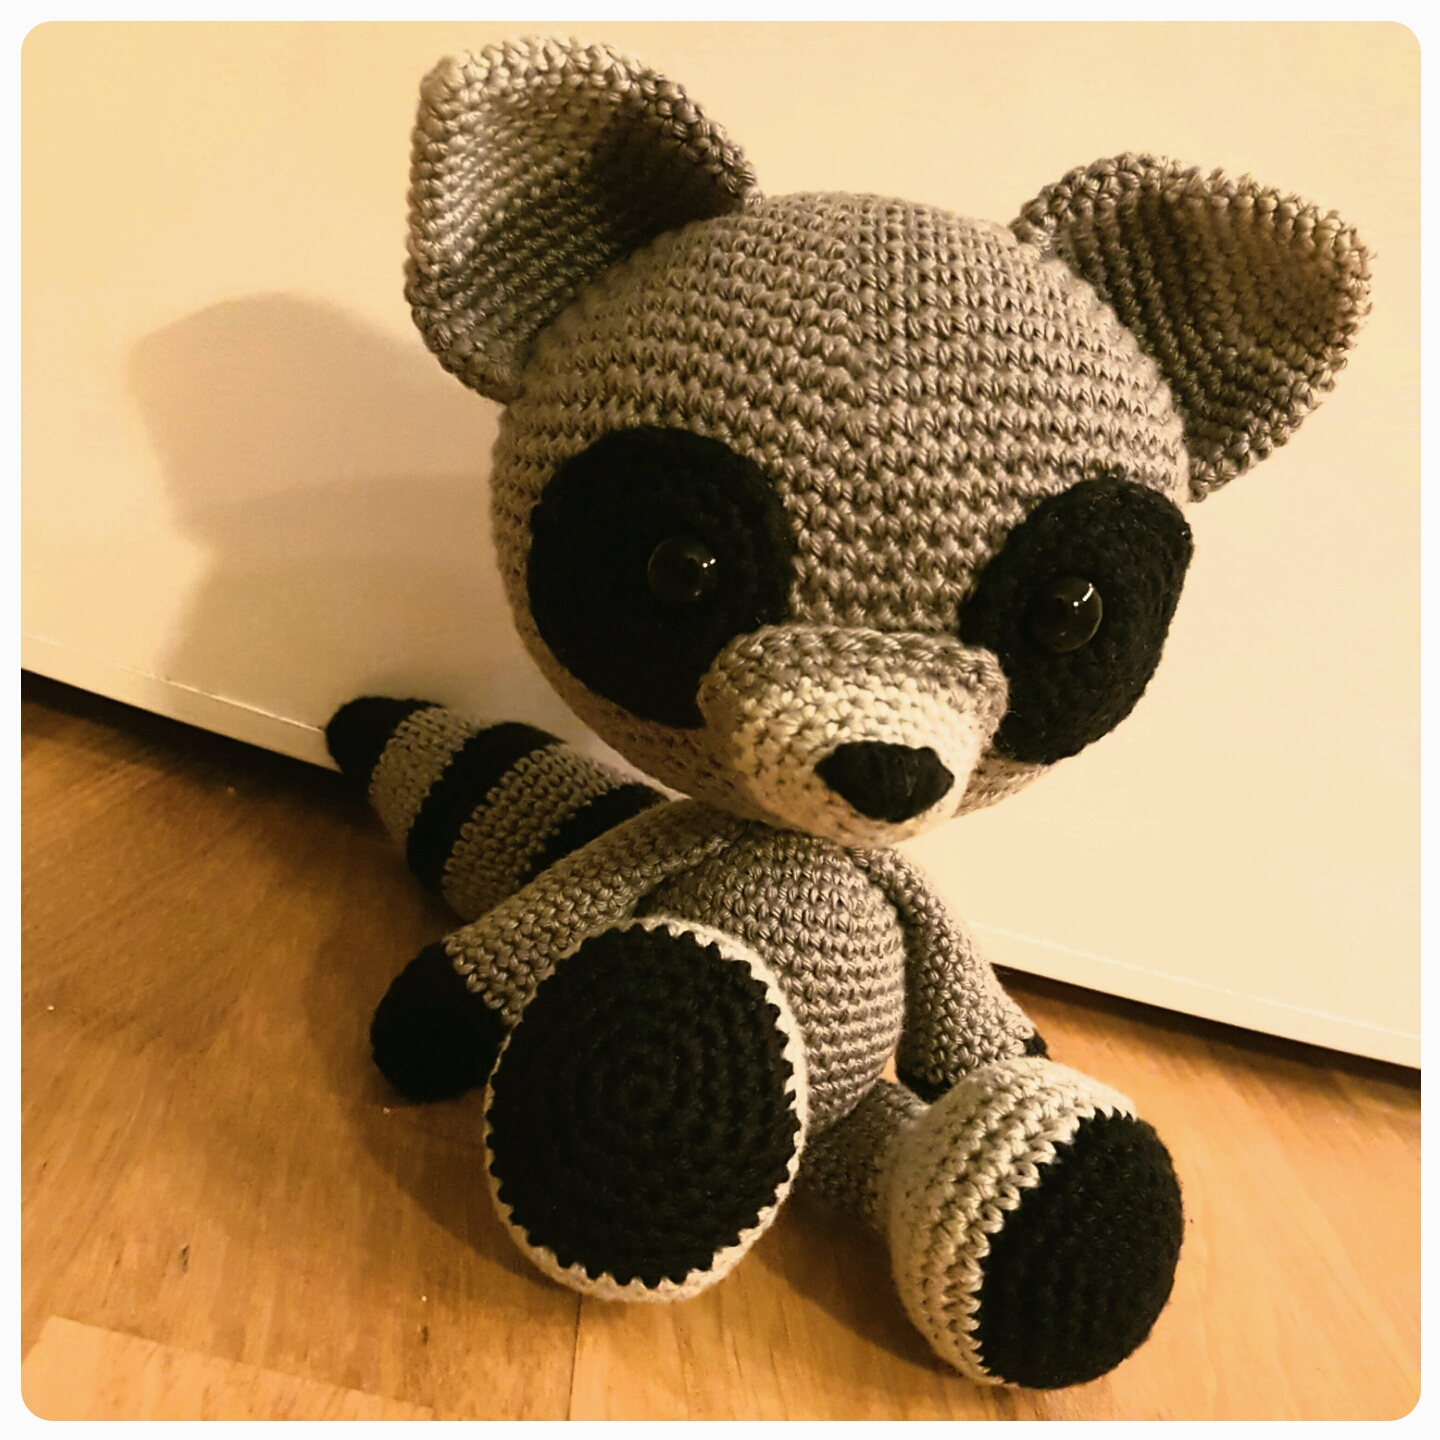 Crochet Bandit The Amigurumi Raccoon | 1440x1440